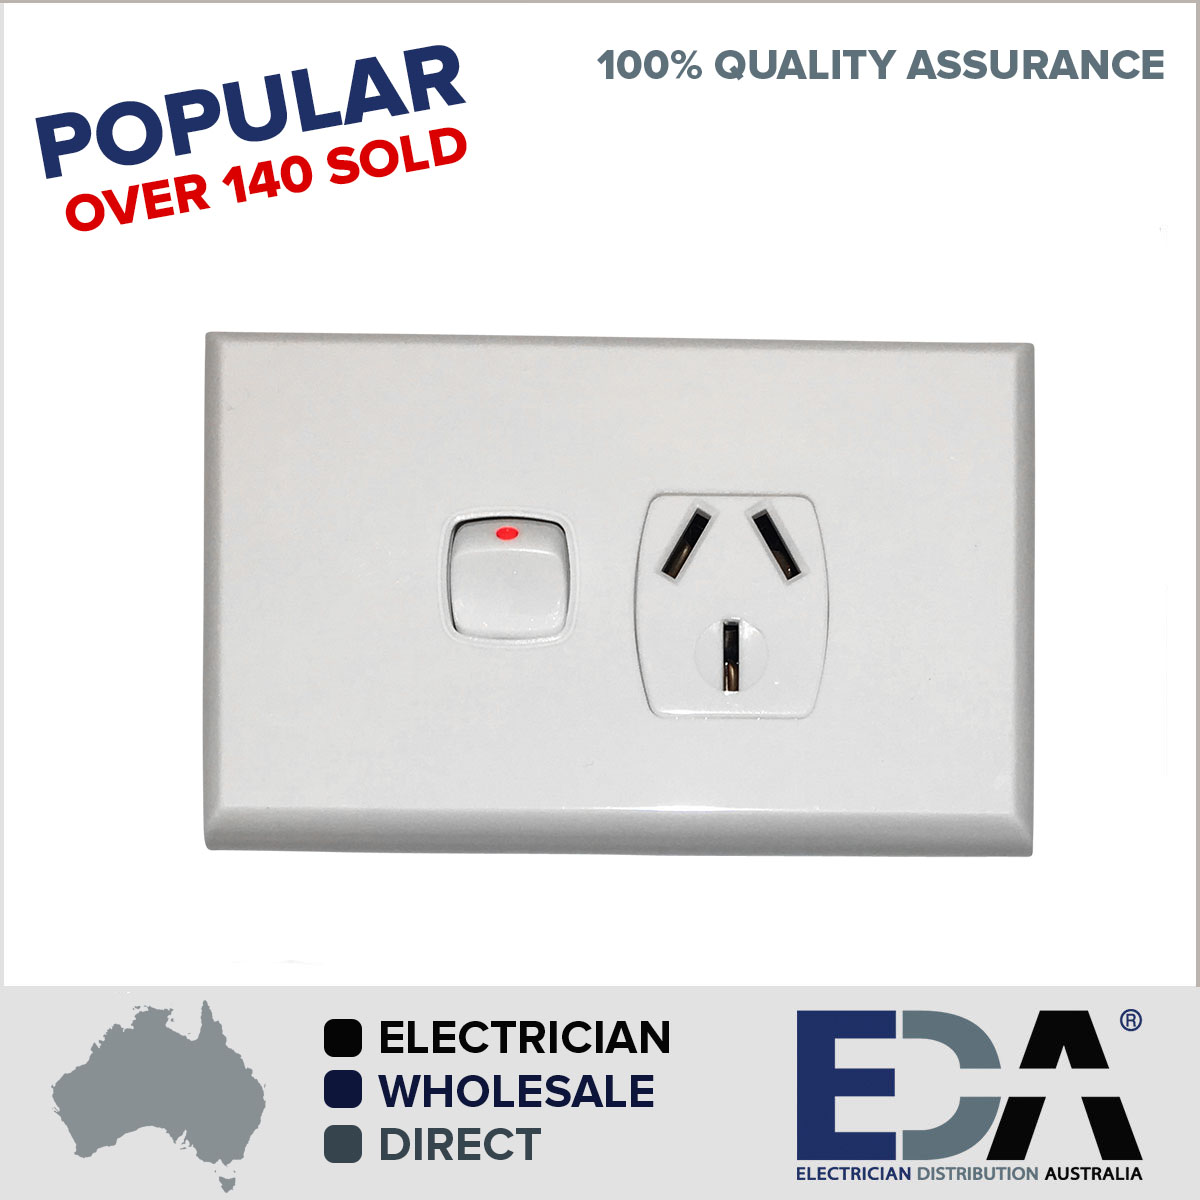 20 amp Single GPO Power Point Outlet Electrical - Eda Online